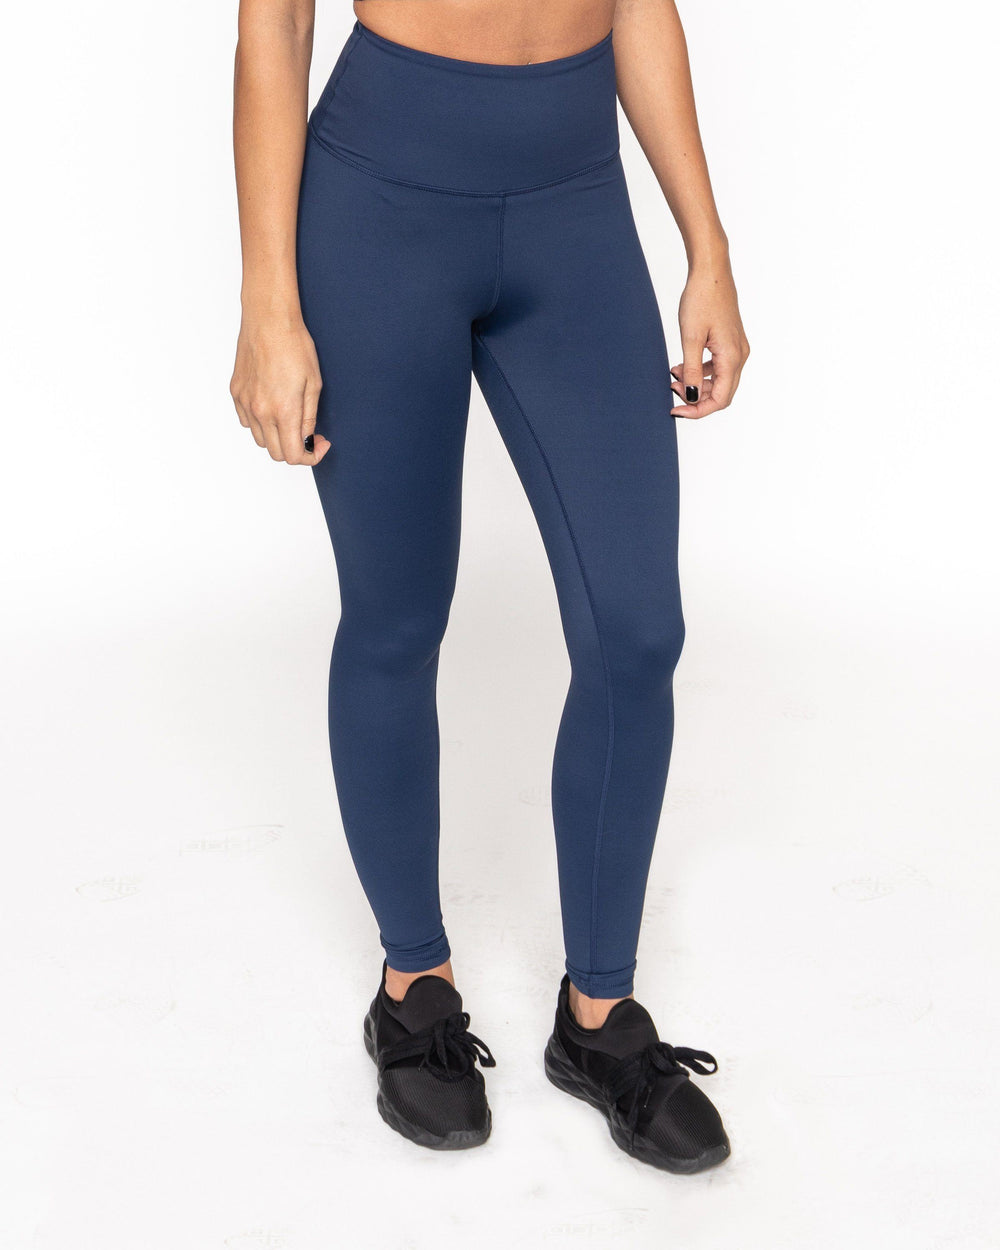 V-SCRUNCH LEGGINGS WOMEN'S LEGGINGS STAIX S NAVY